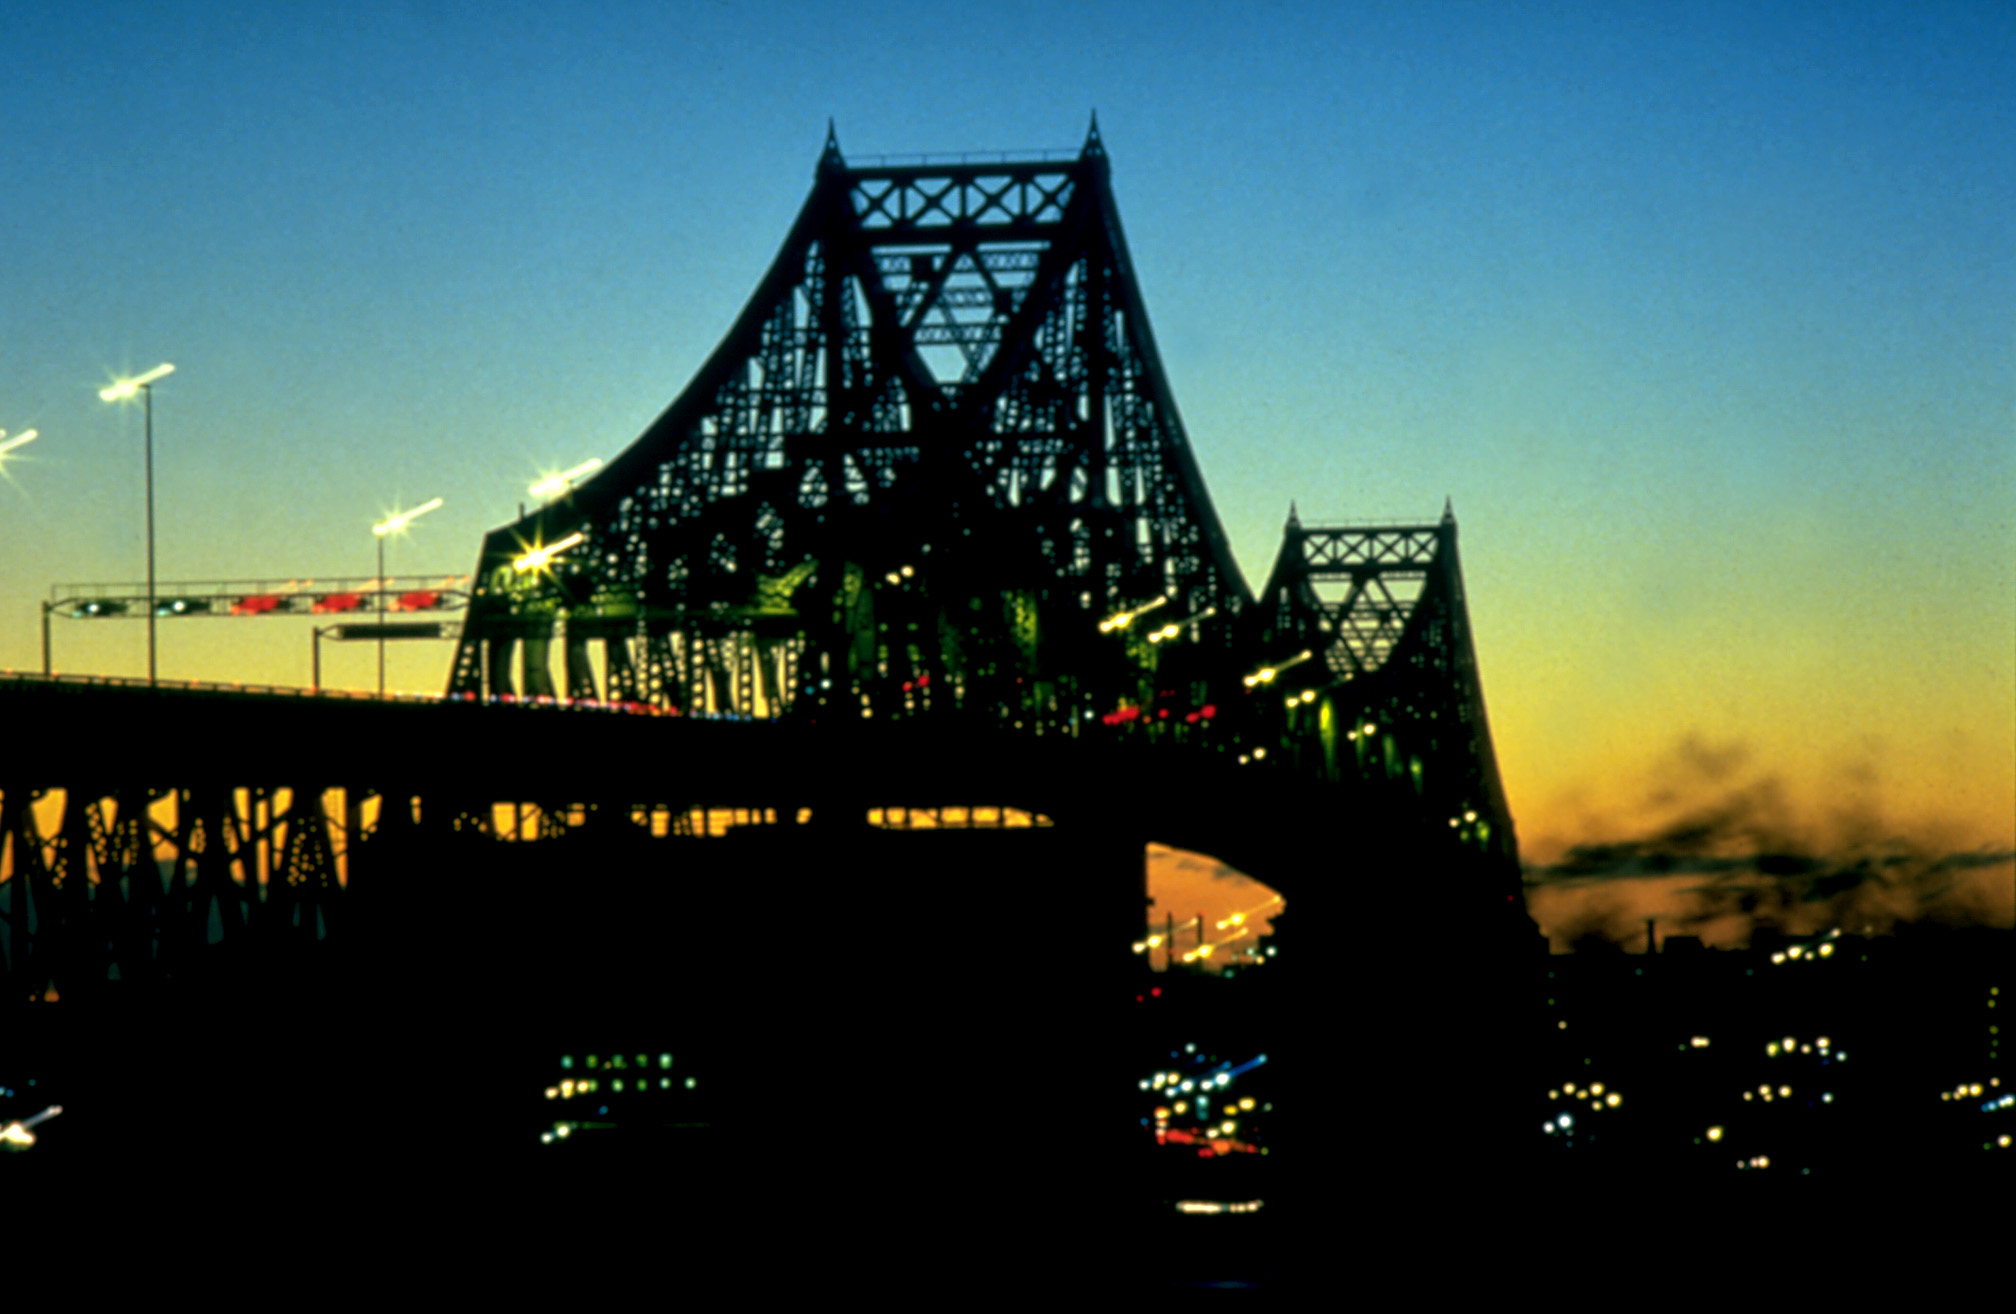 pont_jacques-cartier